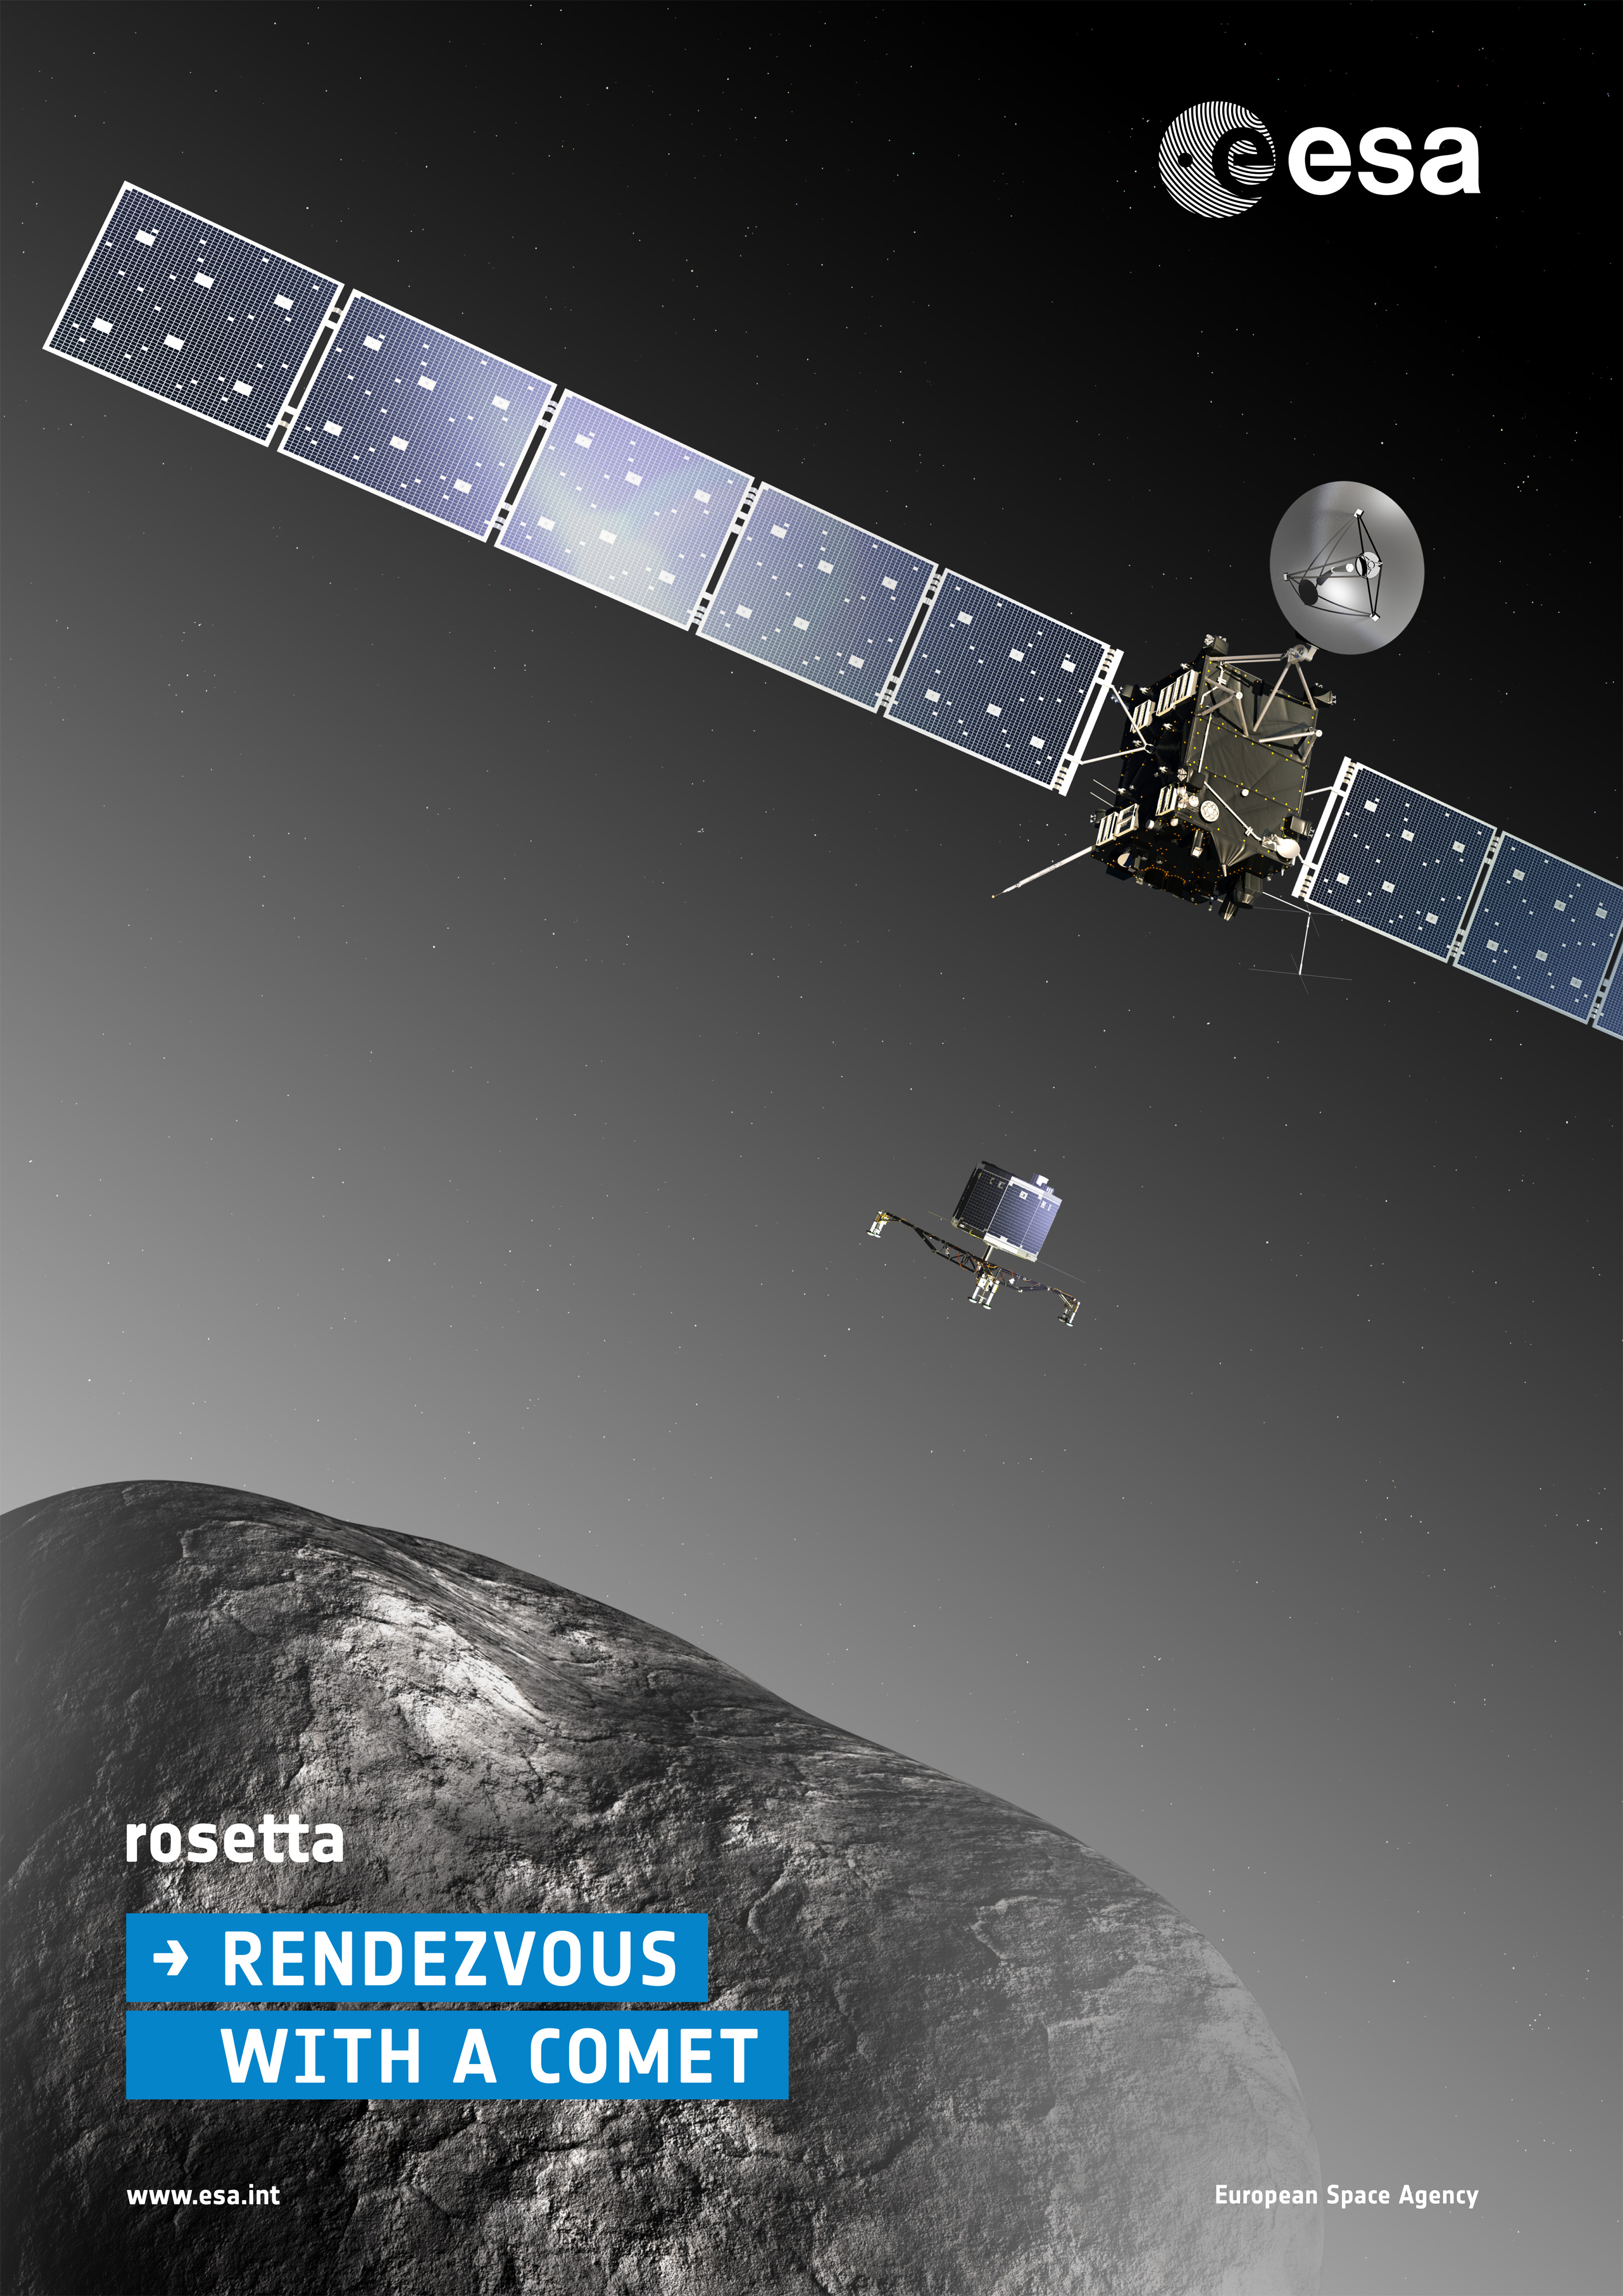 ESA Science & Technology: Rosetta mission poster